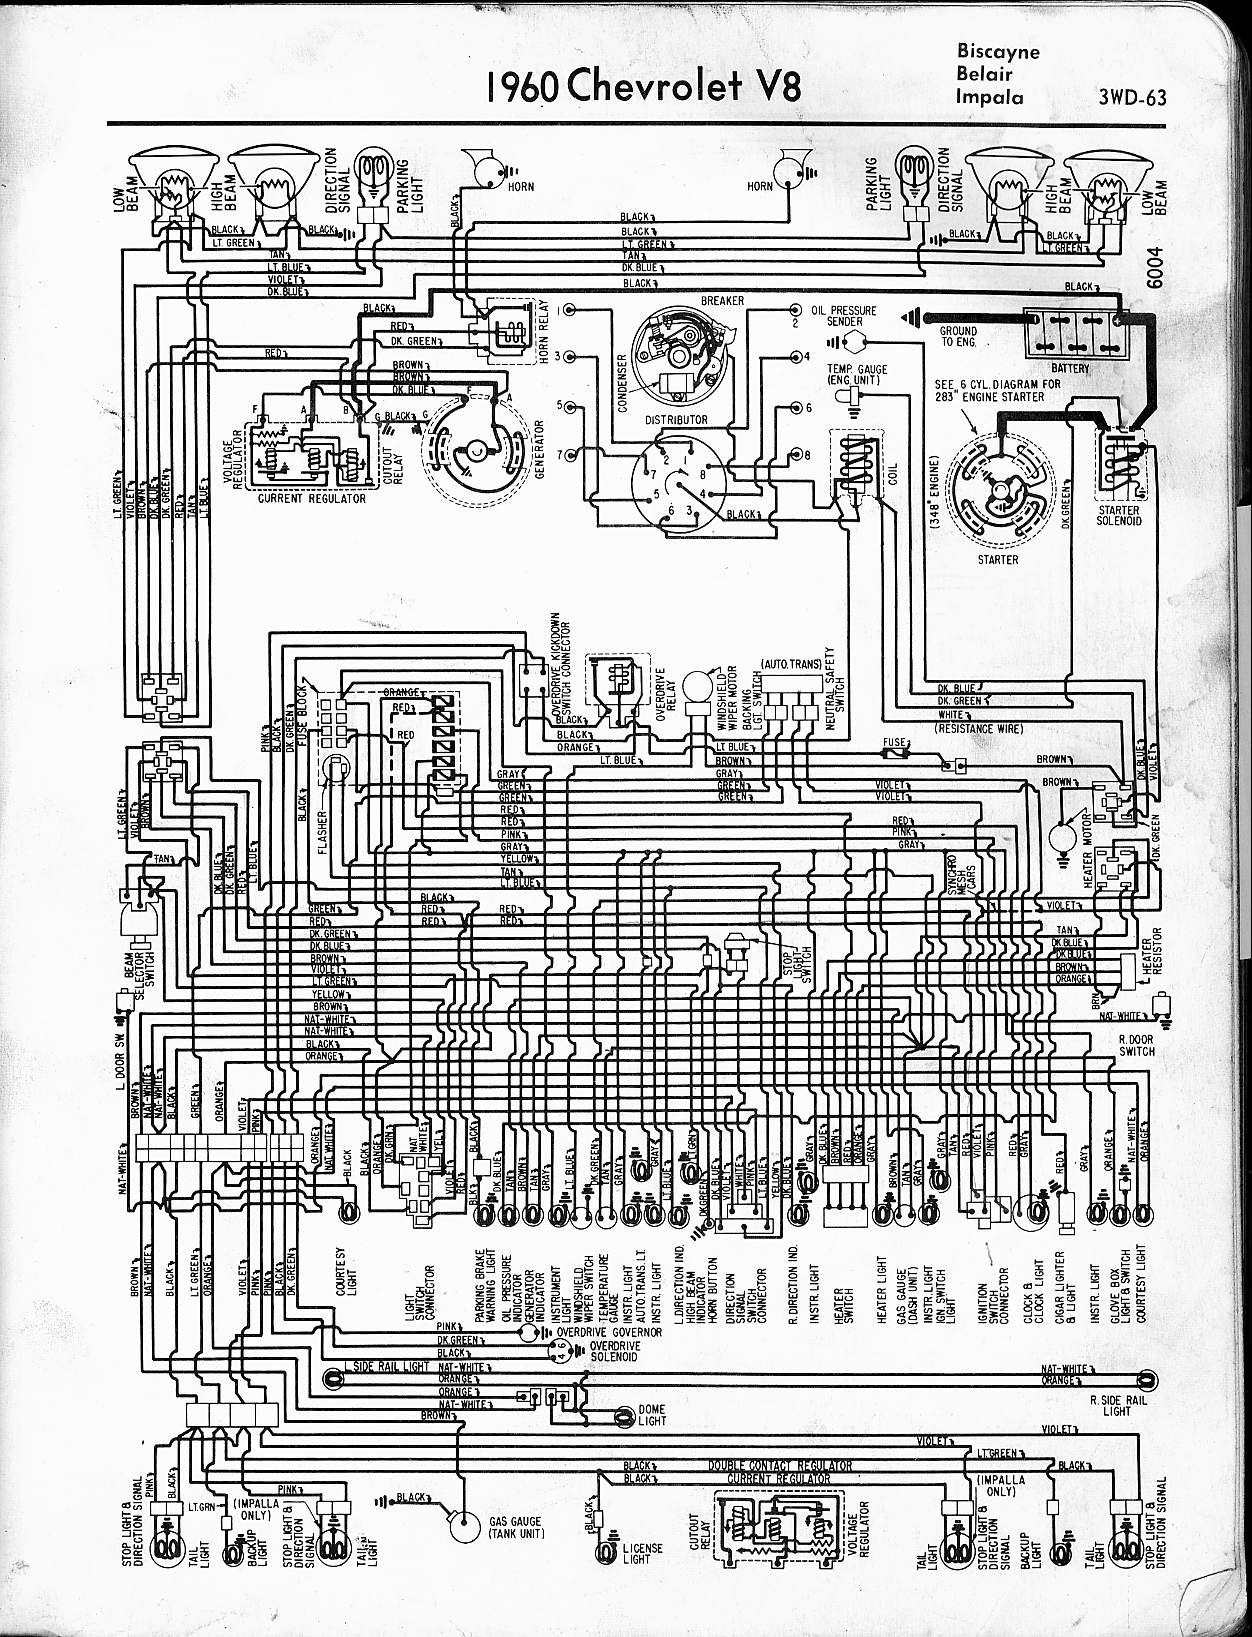 Chevy V8 Wiring Diagram 1962 Fender Telecaster 1960 Chevrolet Diagrams And L6 Engineschevy 17